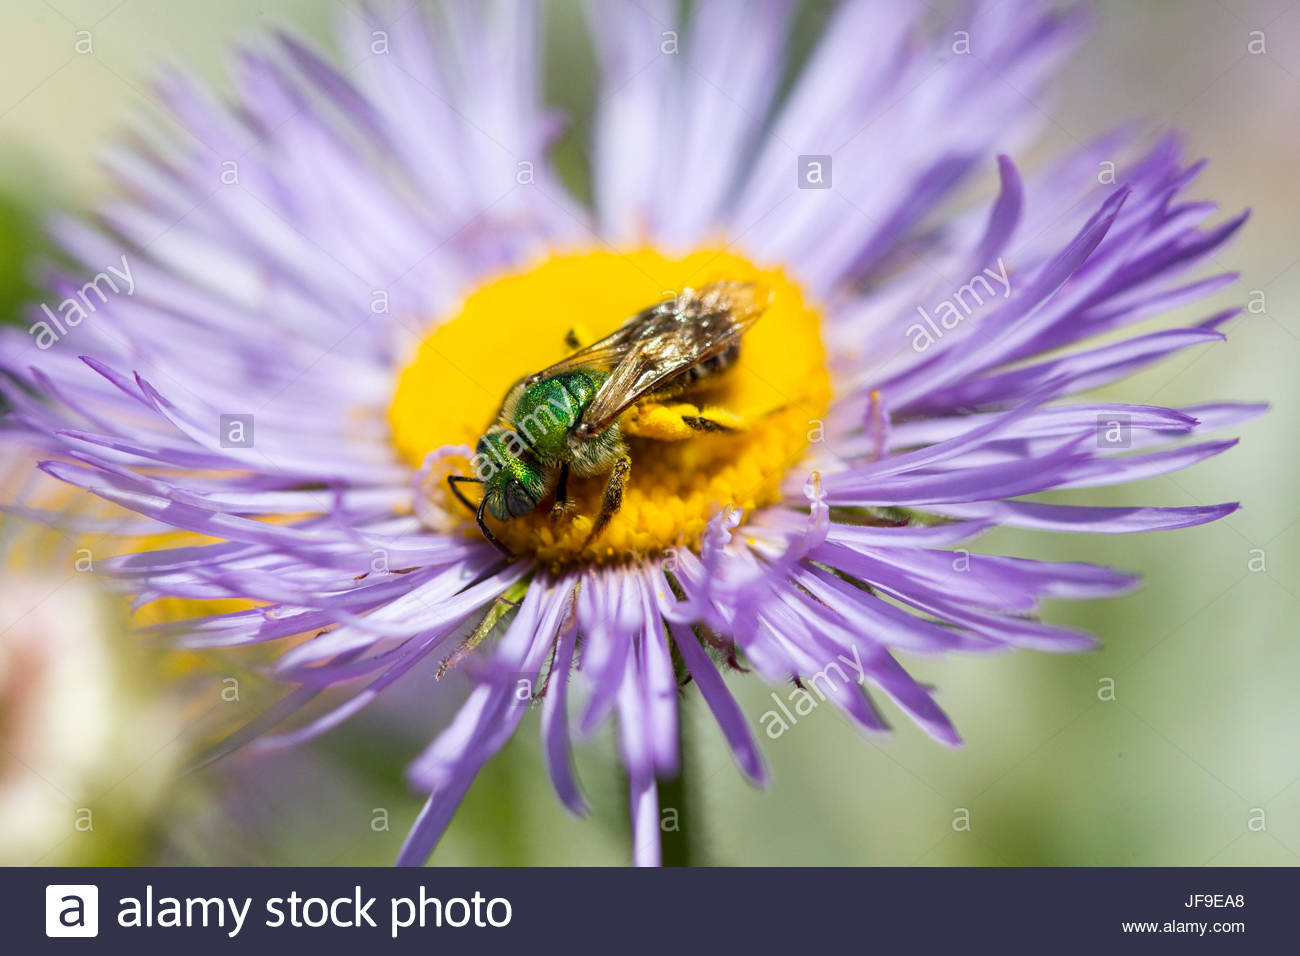 A sweat bee, Agapostemon species, collects pollen from a boltonia flower, Boltonia asteroides. - Stock Image